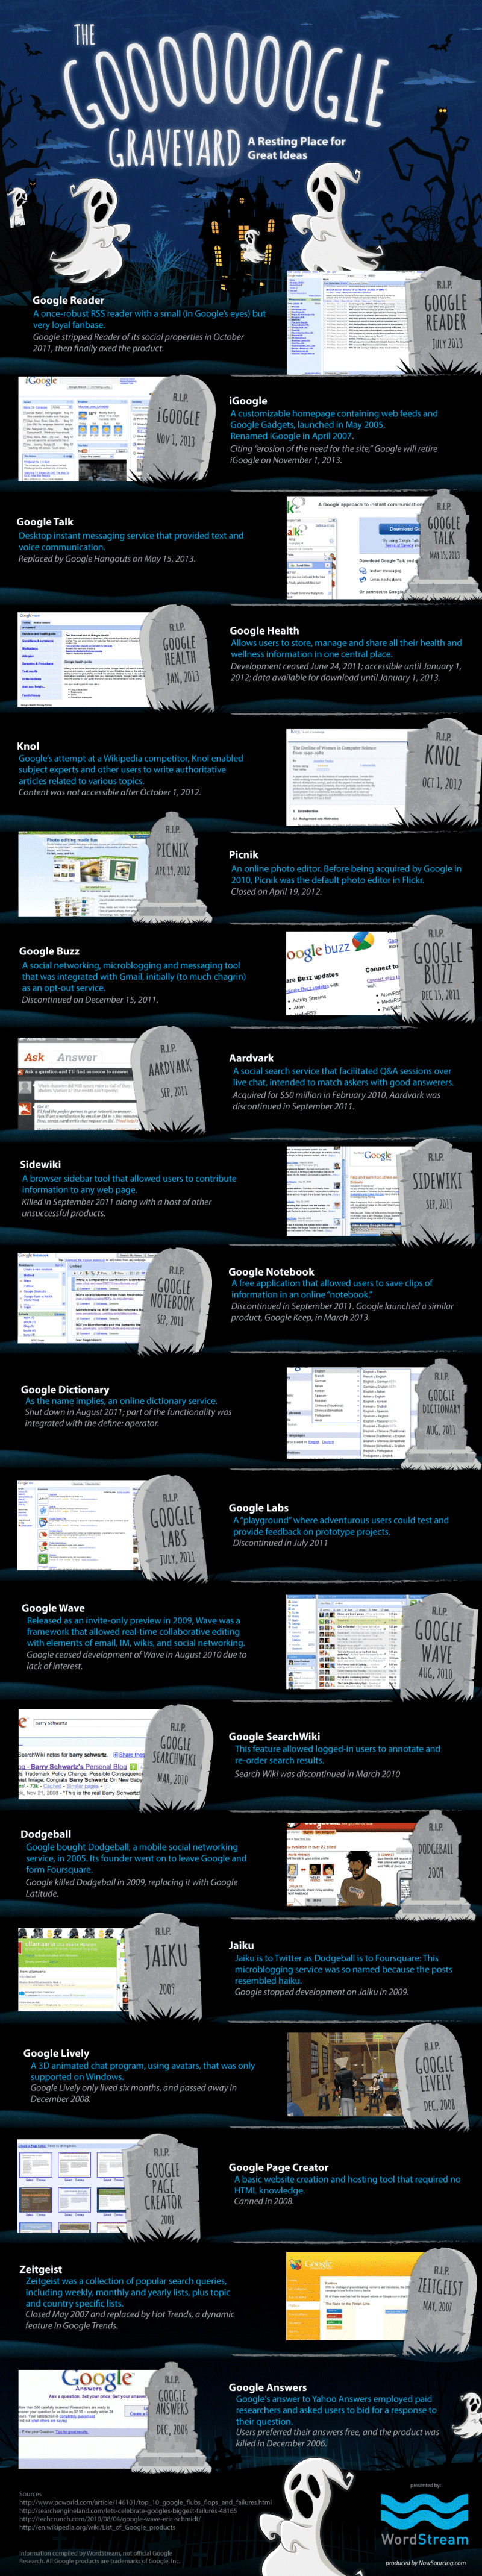 Infographic - Dead Google Products